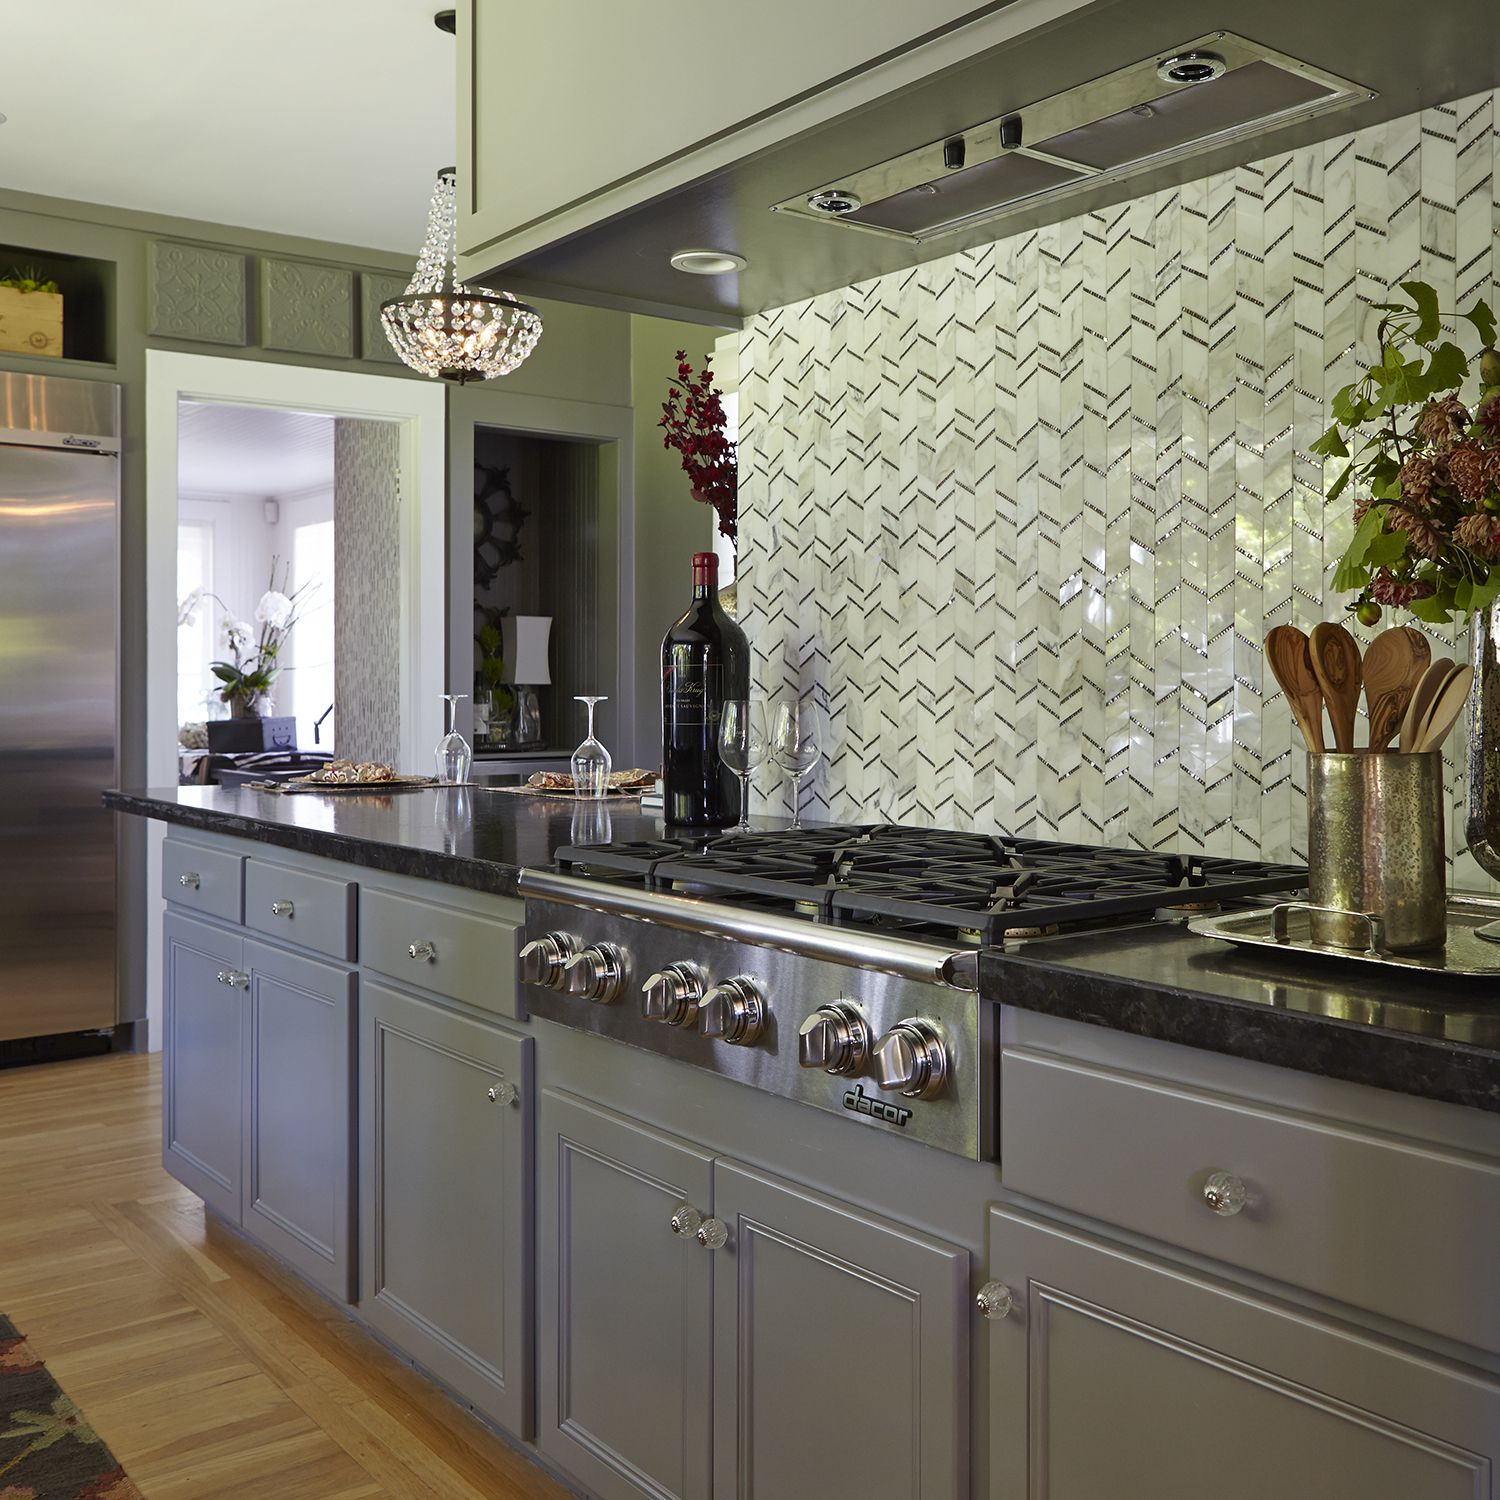 Grey Kitchen Cabinets With Black Appliances: Lovely Tiles From AKDO Form The Geometric Backsplash. The